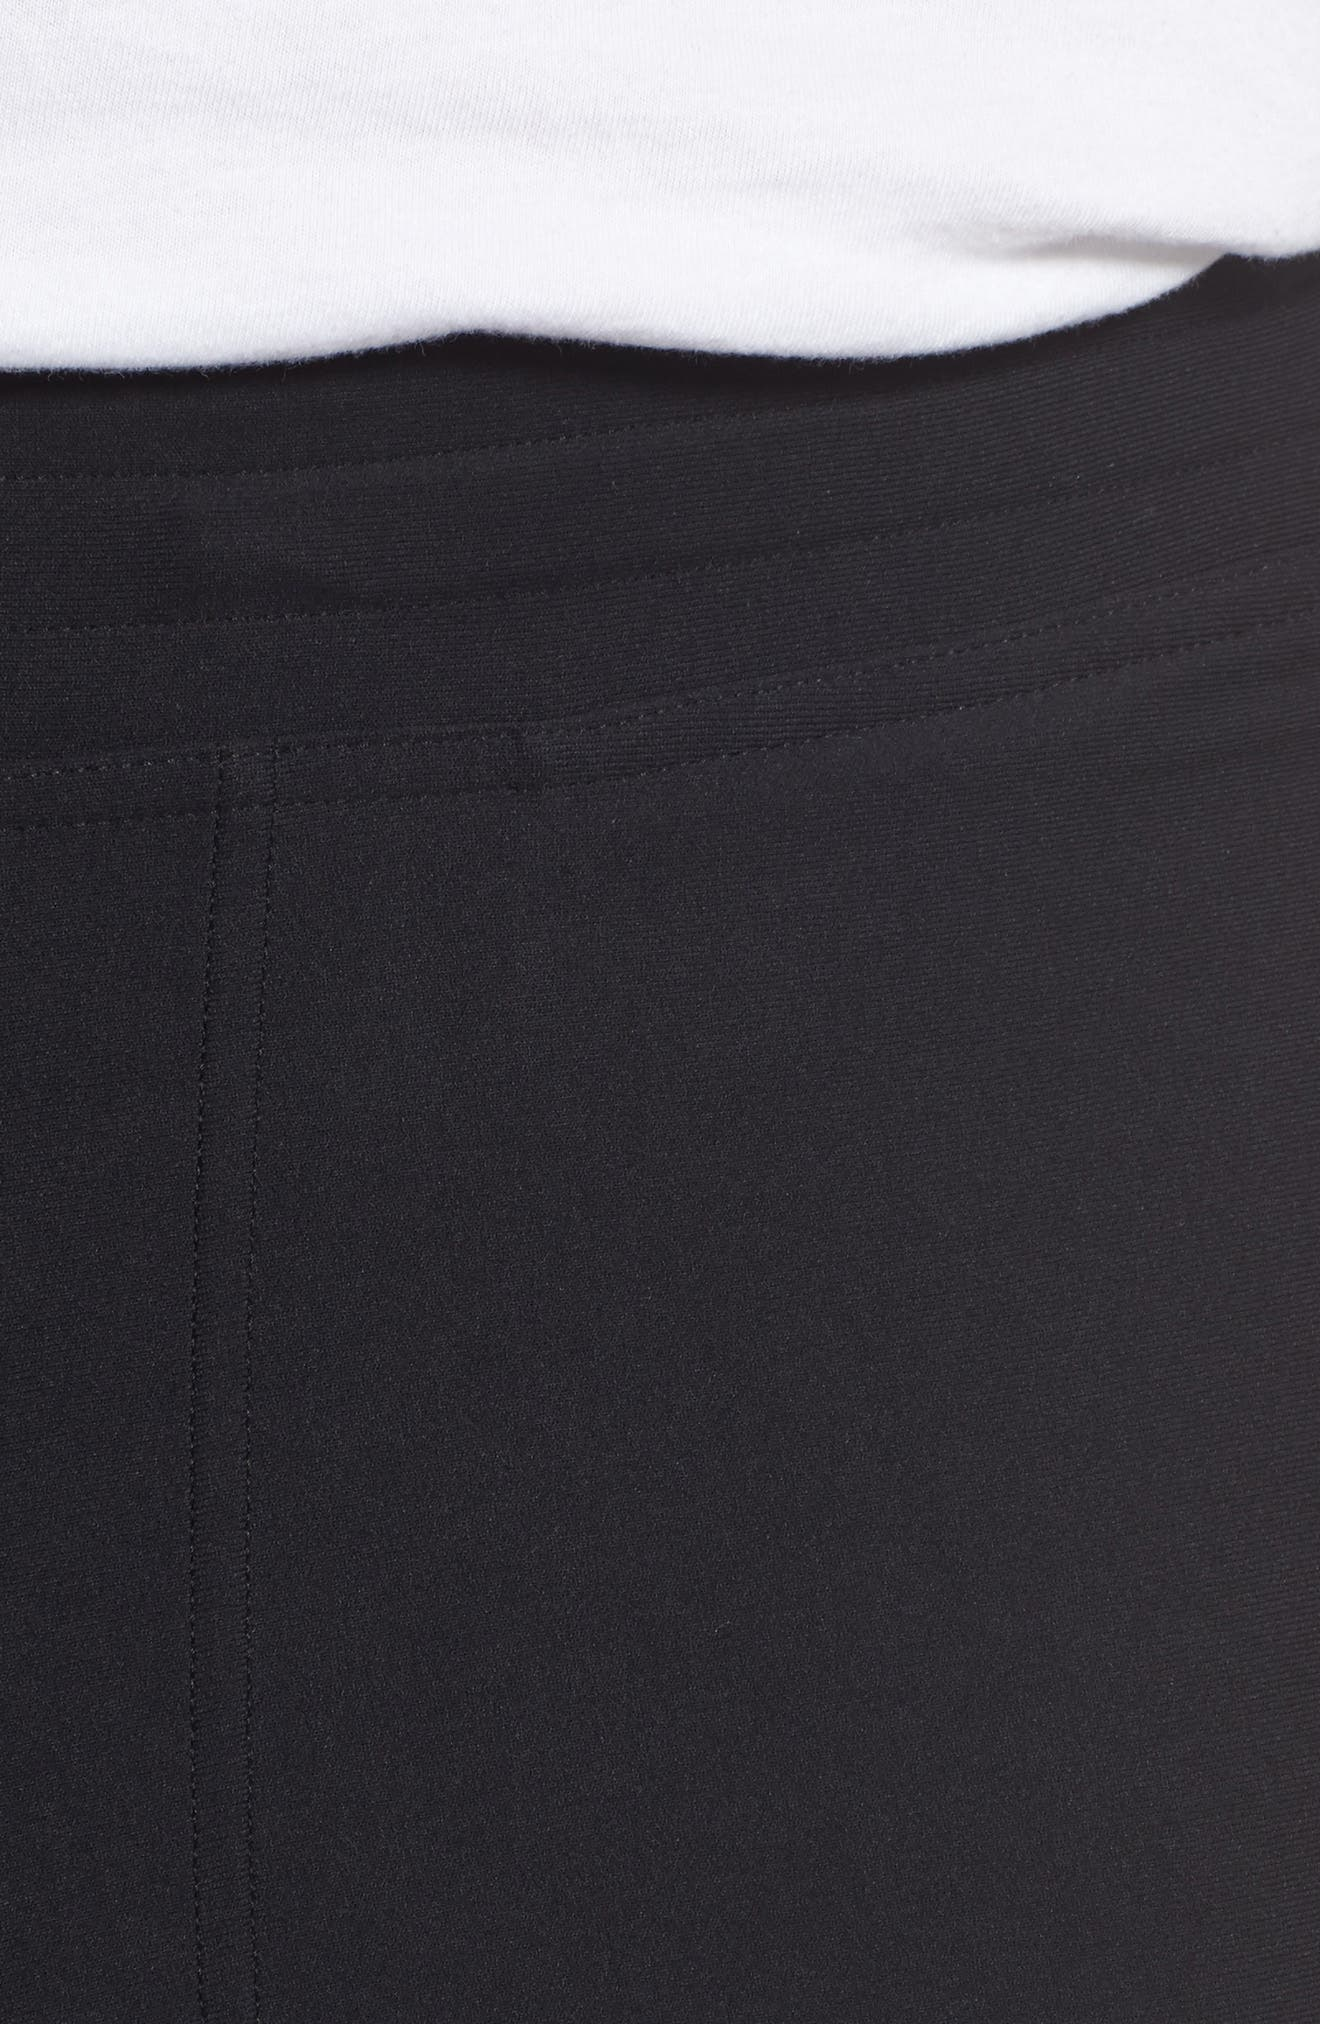 Elevated Pants,                             Alternate thumbnail 11, color,